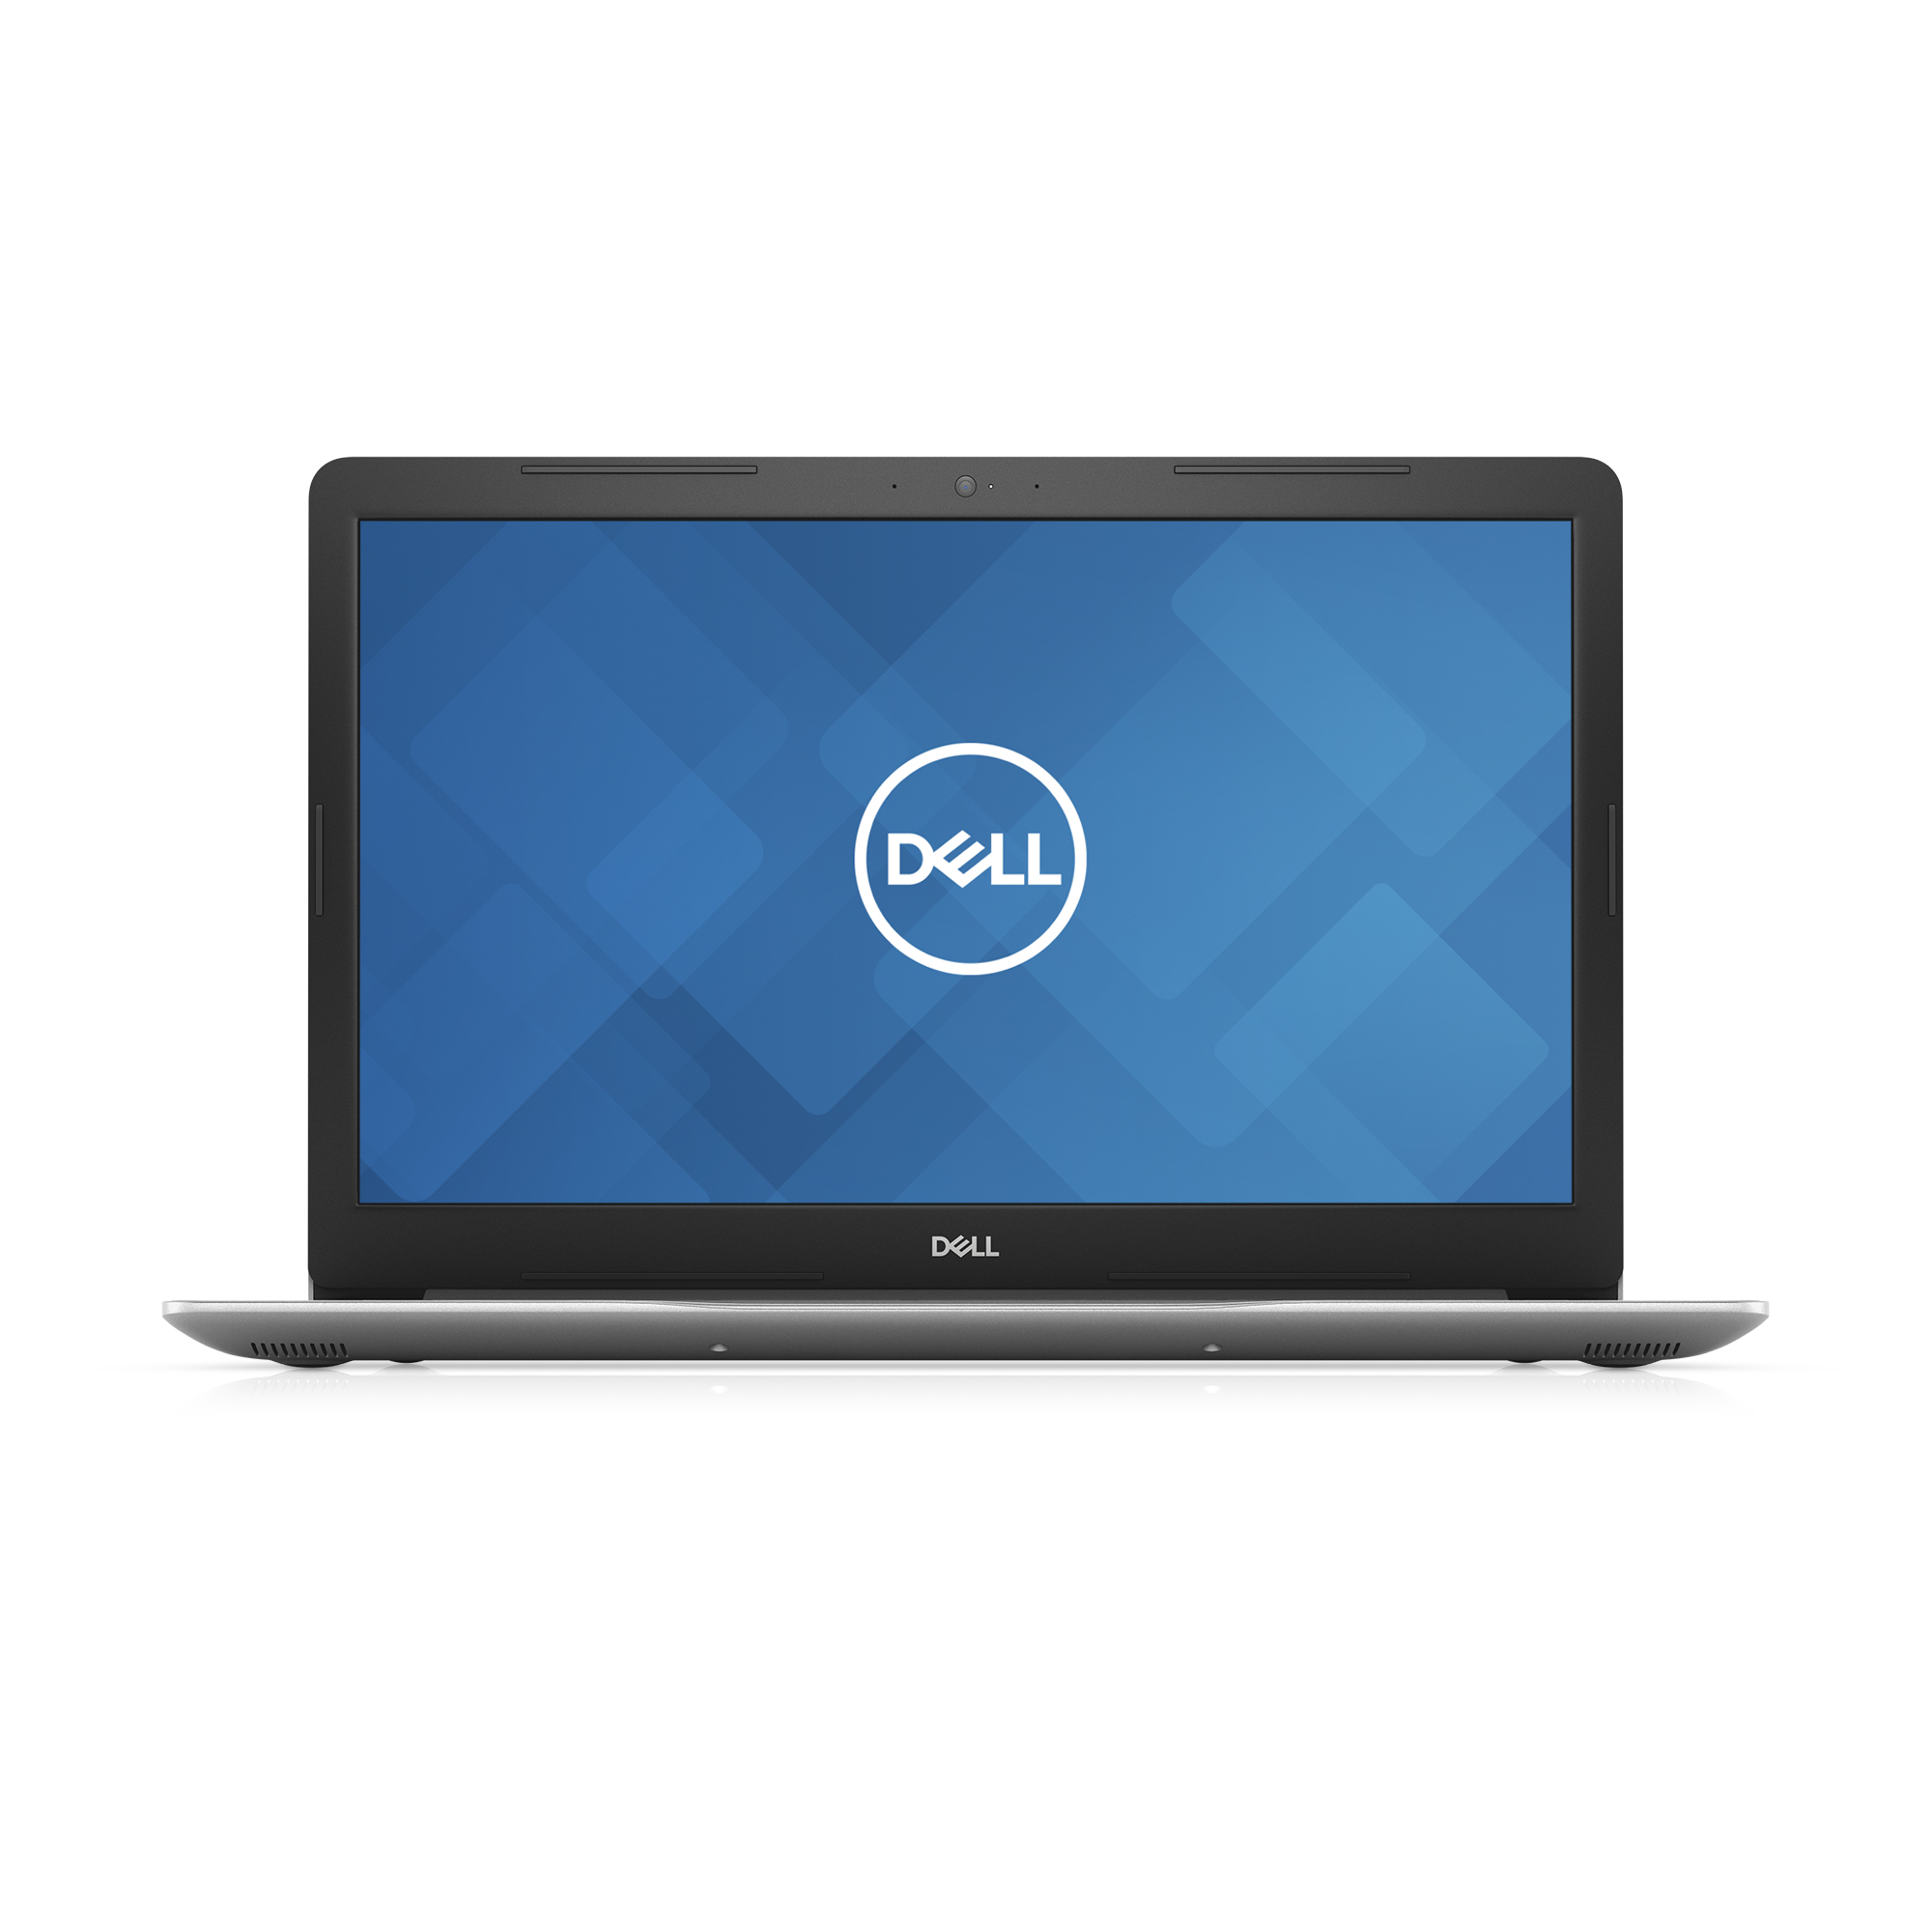 "Dell Inspiron 5575 15.6"" FHD Laptop (Quad Ryzen 7 2700U / 8GB / 1TB)"